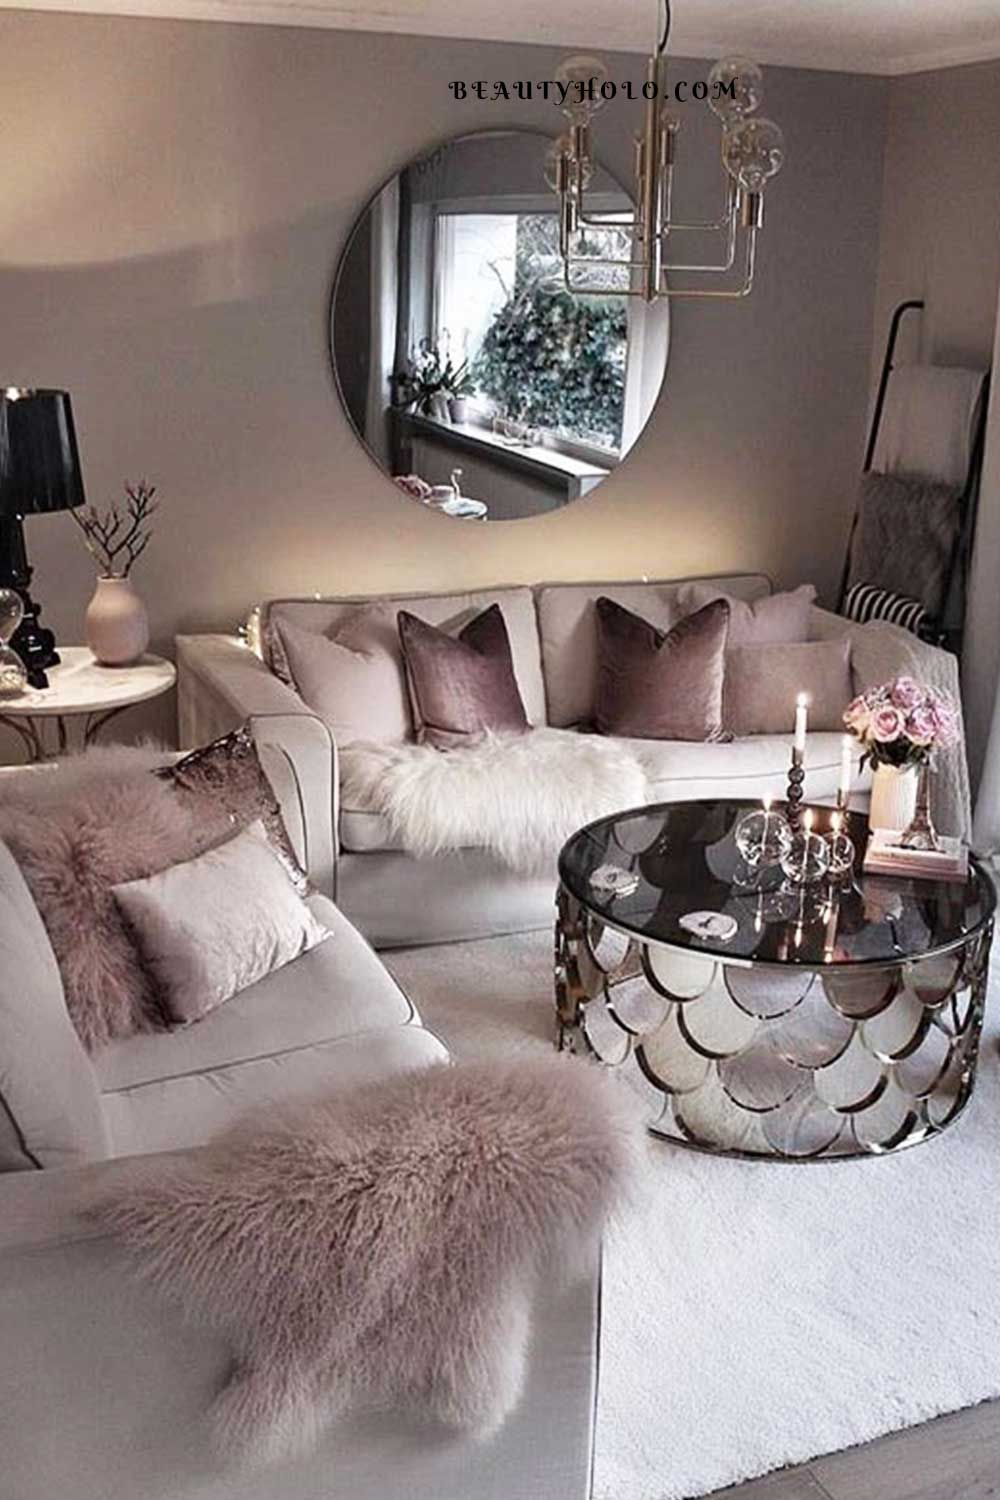 17 Best Home Decor Ideas For Living Room On A Budget In 2021 Formal Living Room Designs Living Room Decor Cozy Luxury Living Room Best home decor for living room